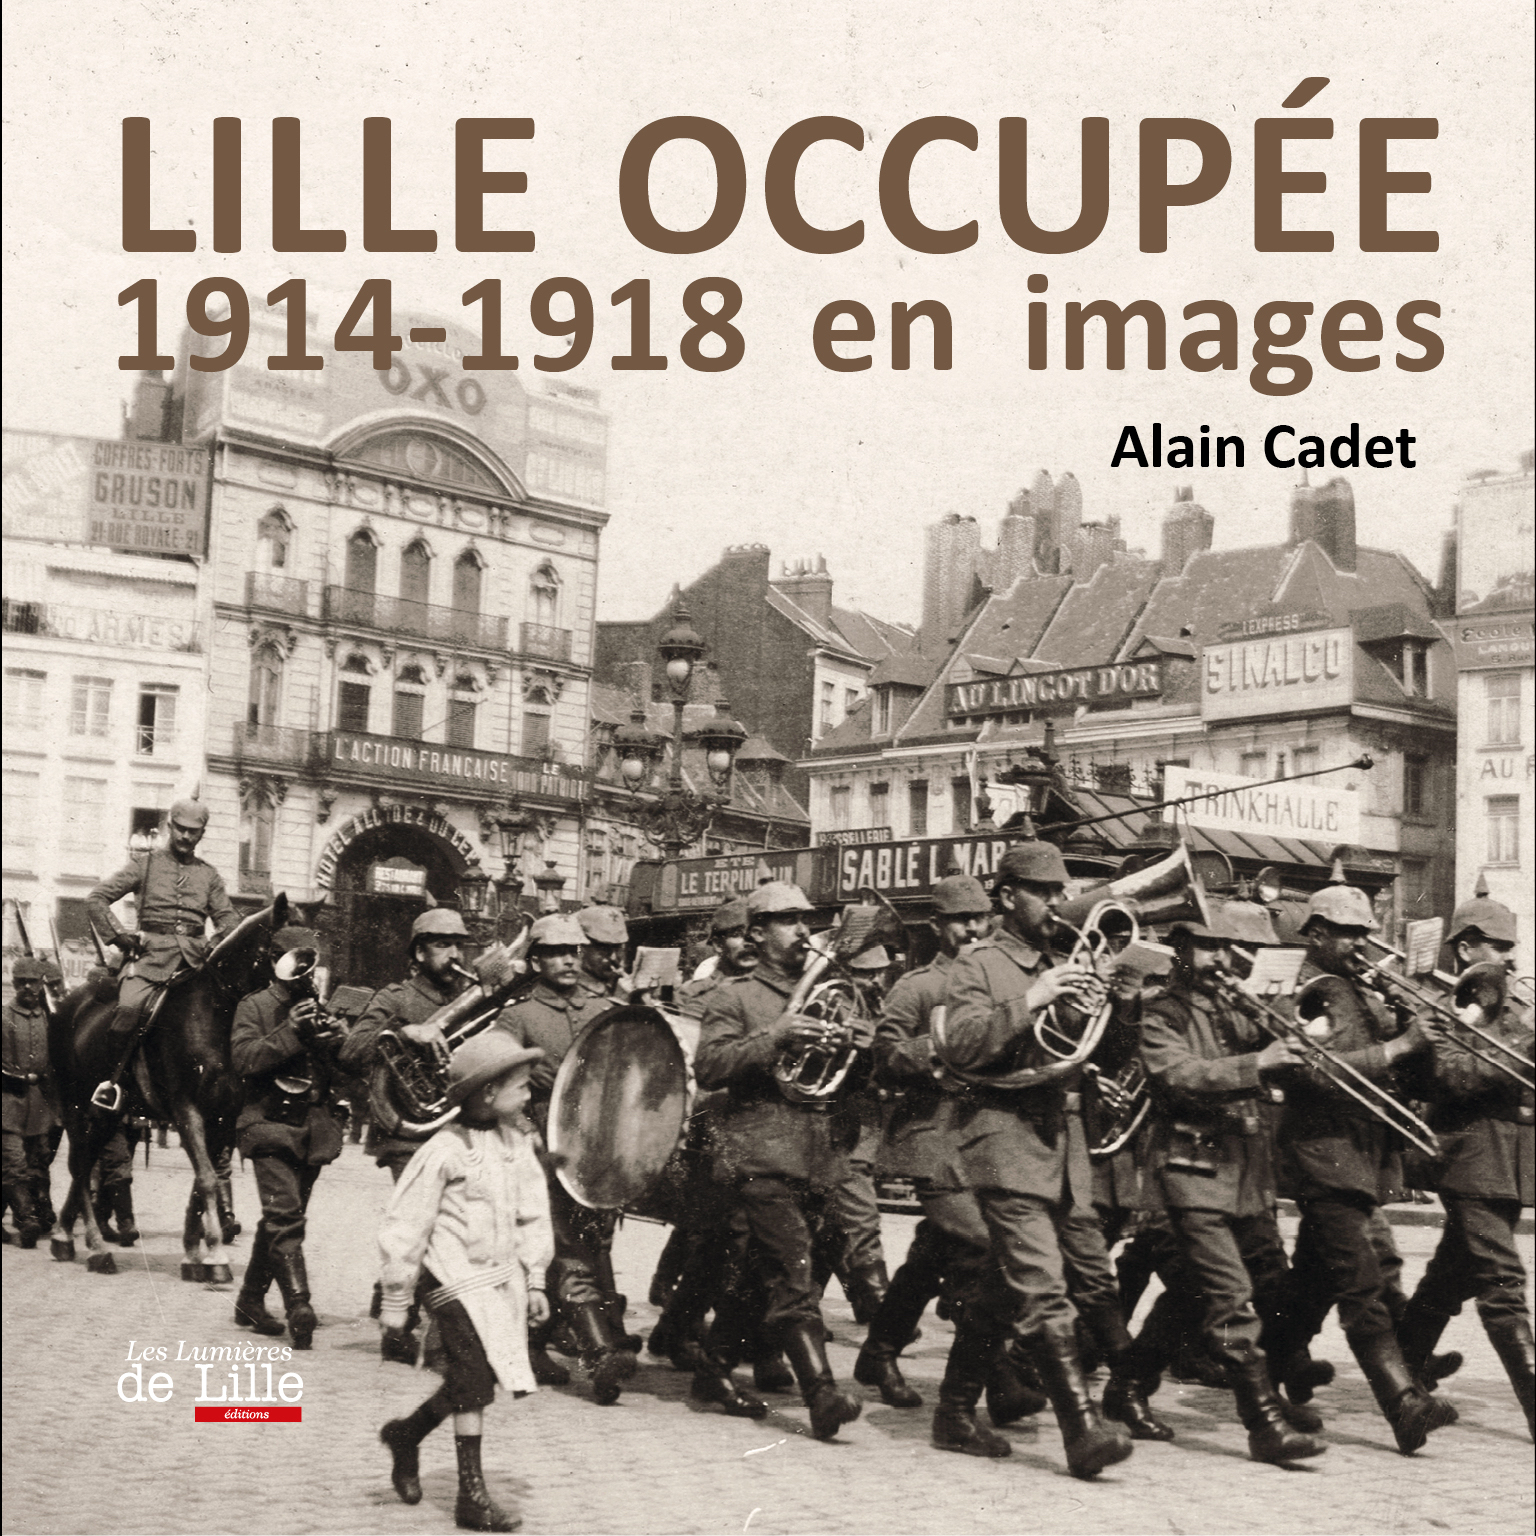 1re LILLE OCCUPÉE 1914-1918